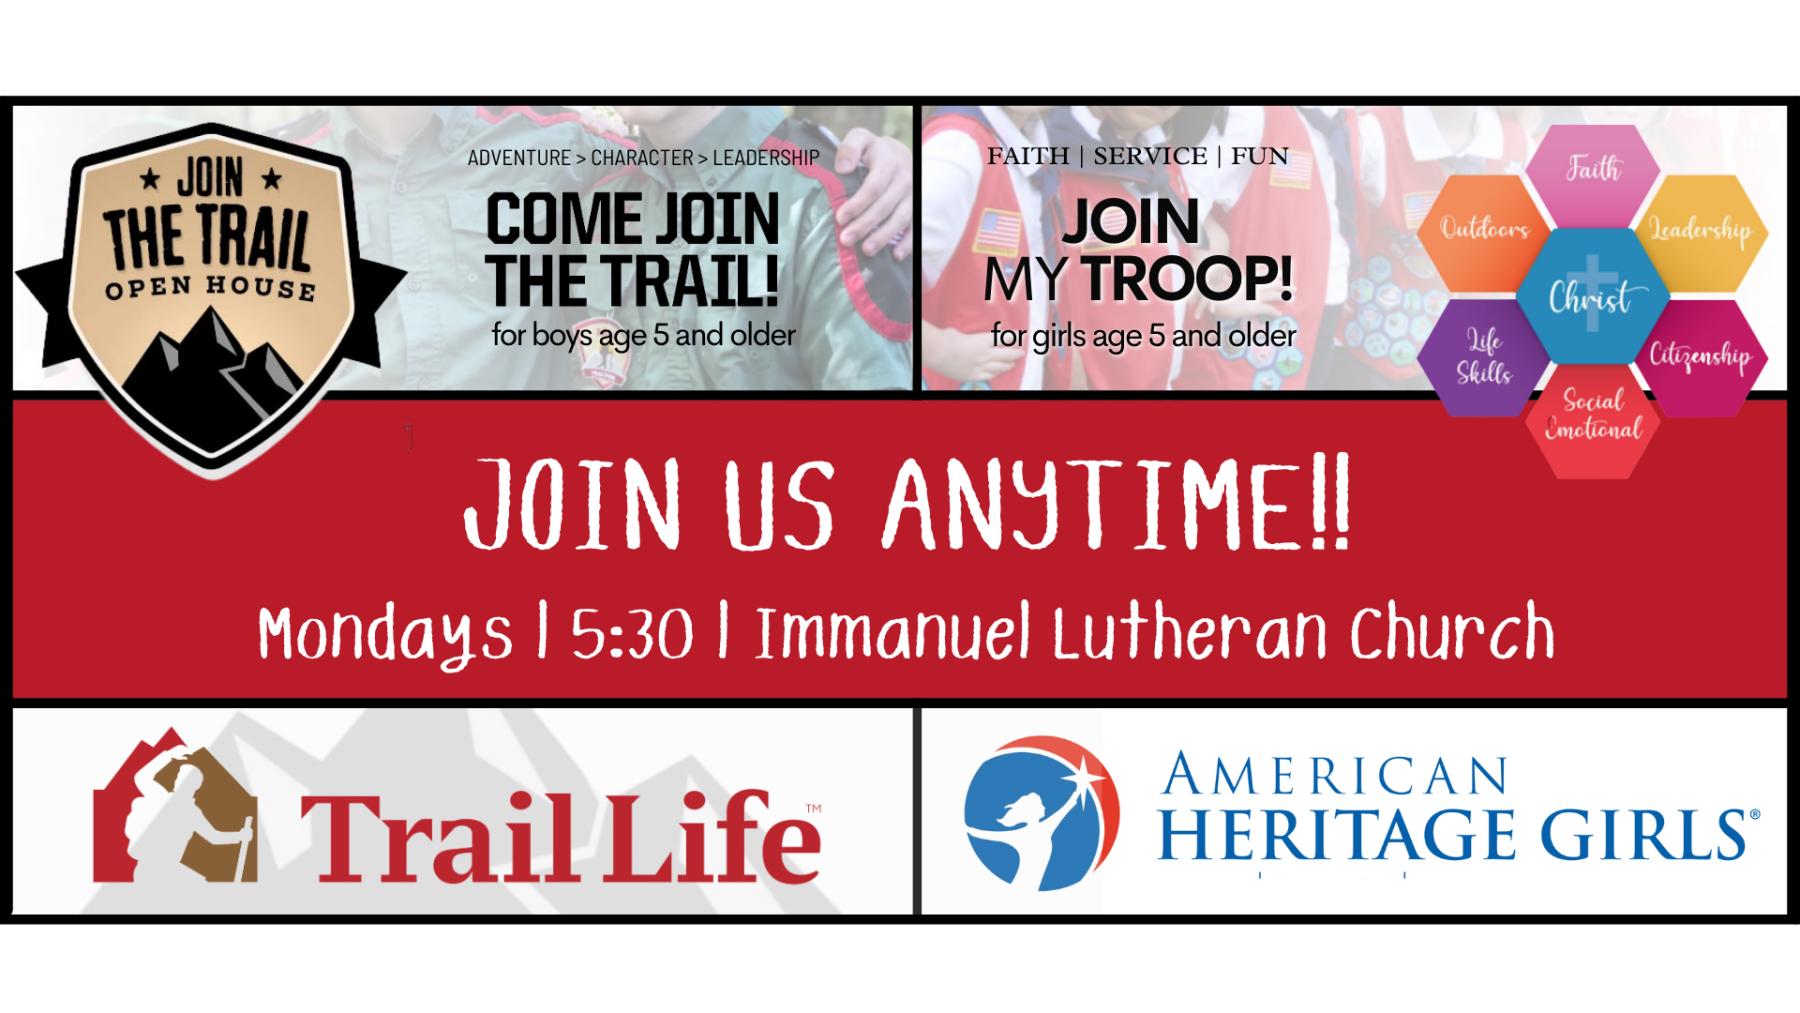 American Heritage Girls and Trail Life USA Meeting